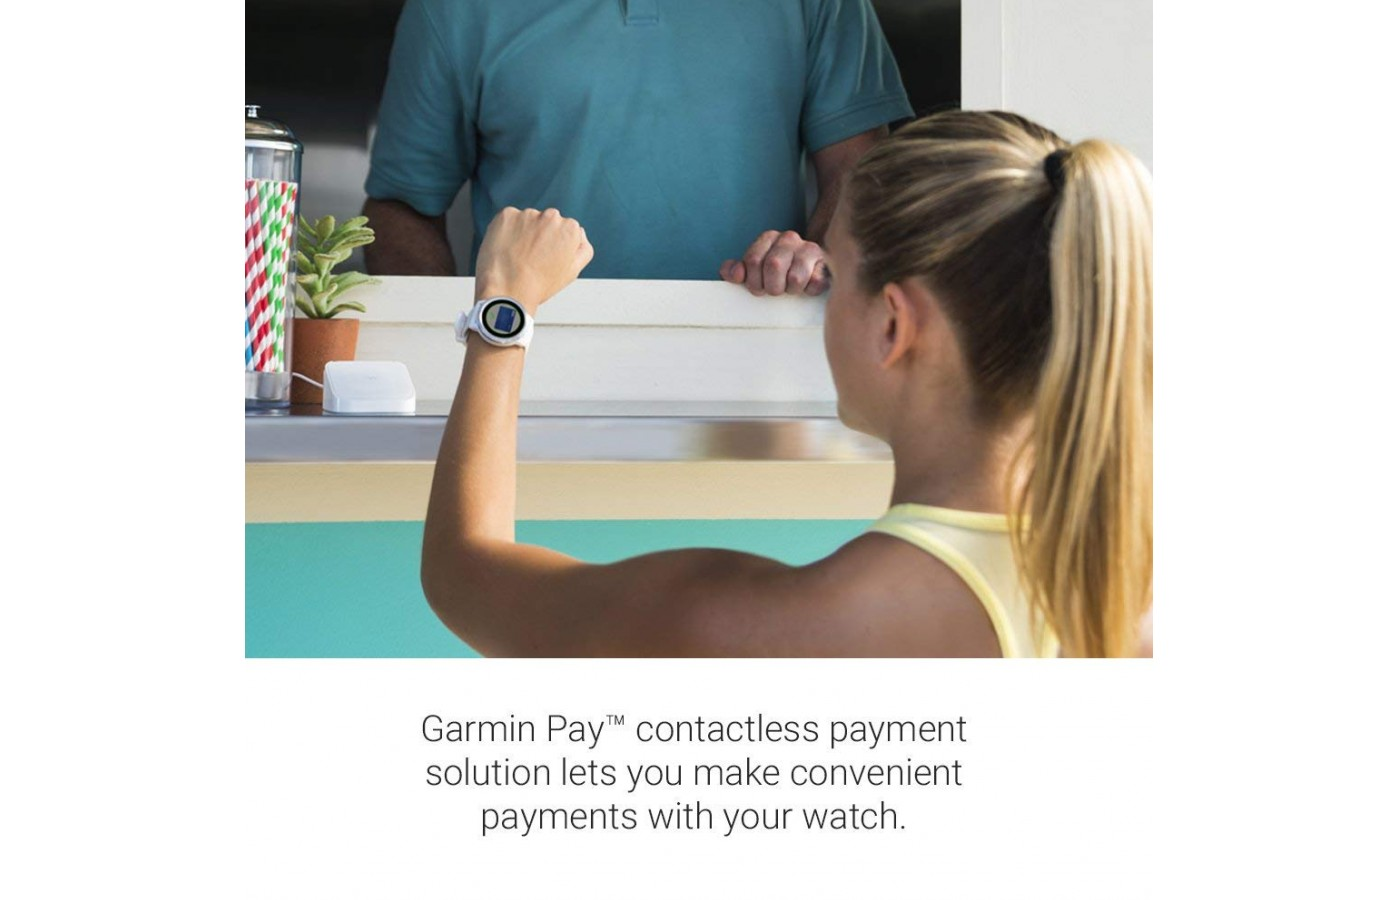 Garmin Pay is another useful app, if you find yourself out and about without your wallet and want to buy a beverage or quick snack